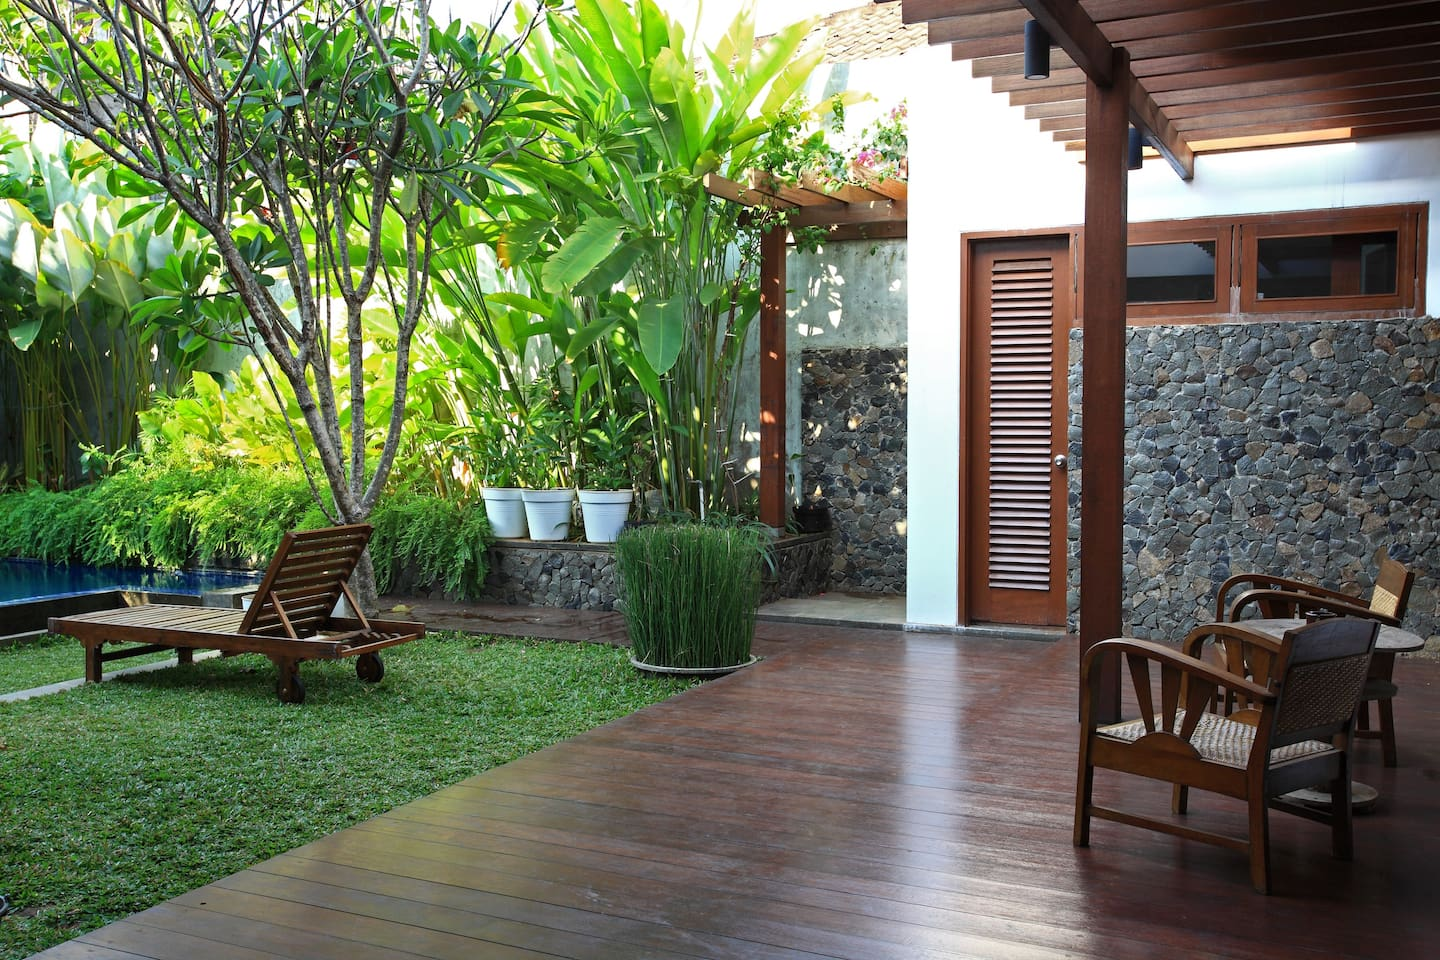 Tropical wood house in Central Jkt